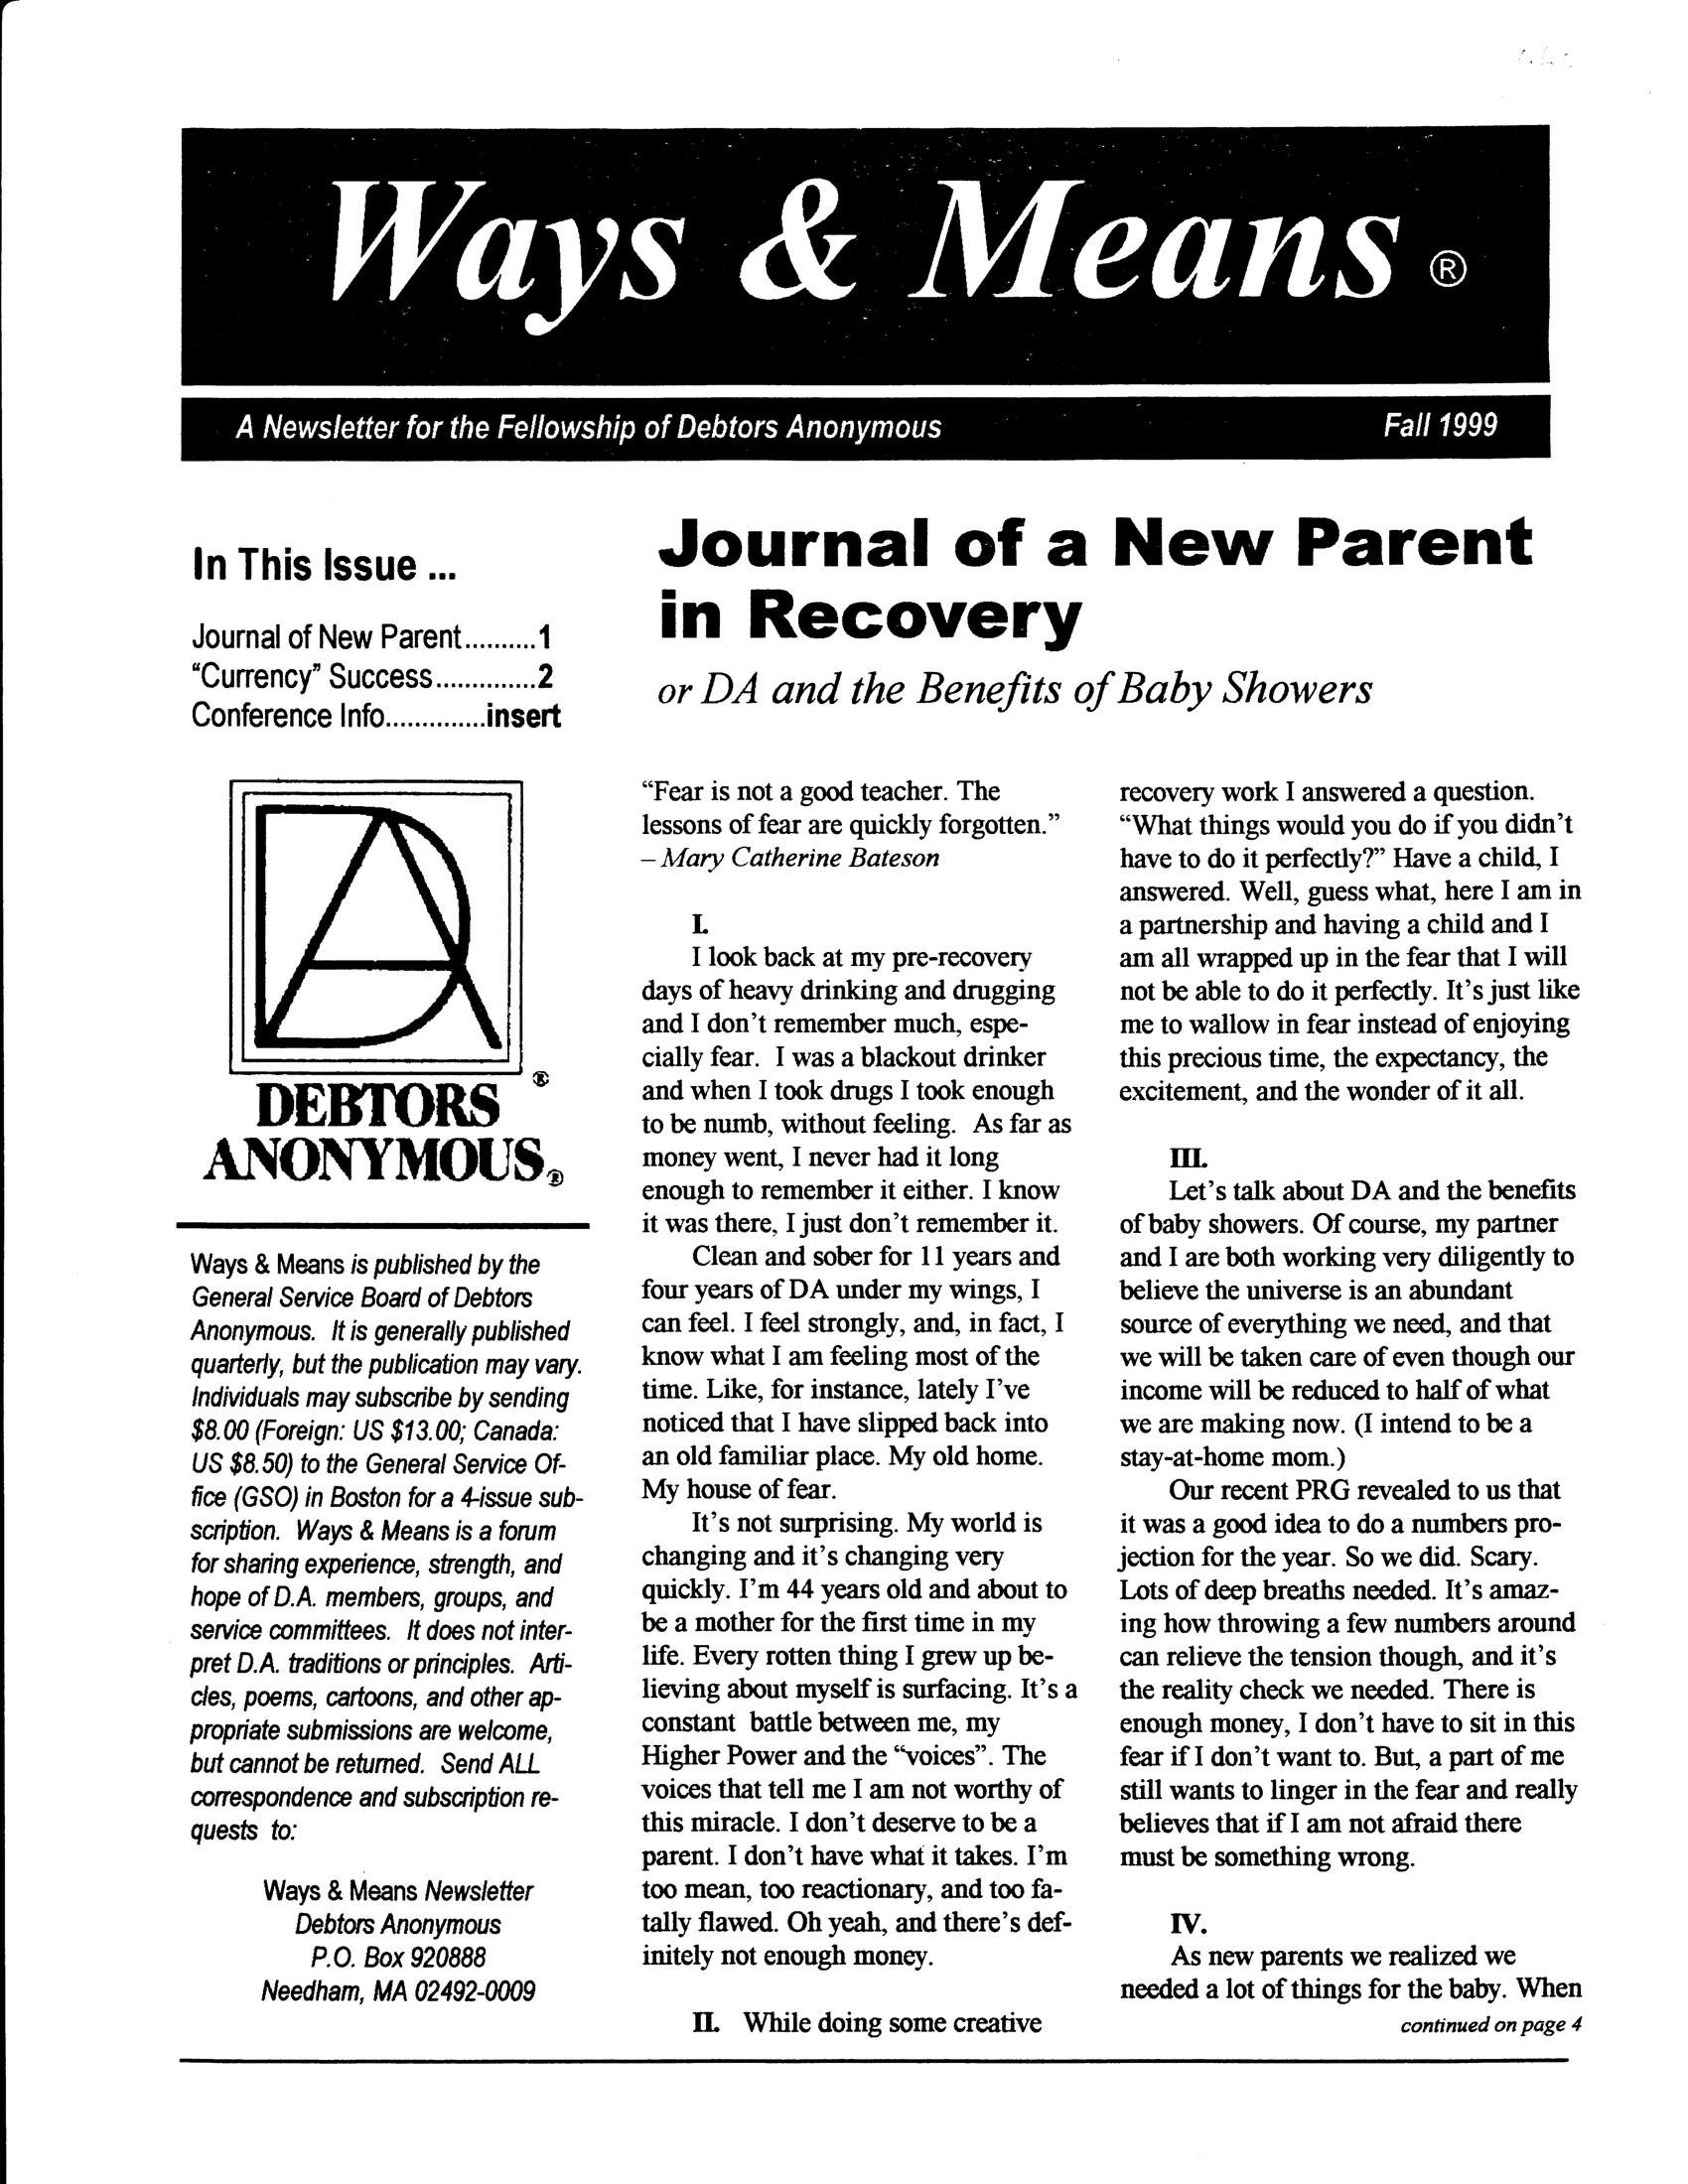 Ways & Means 4th QTR 1999